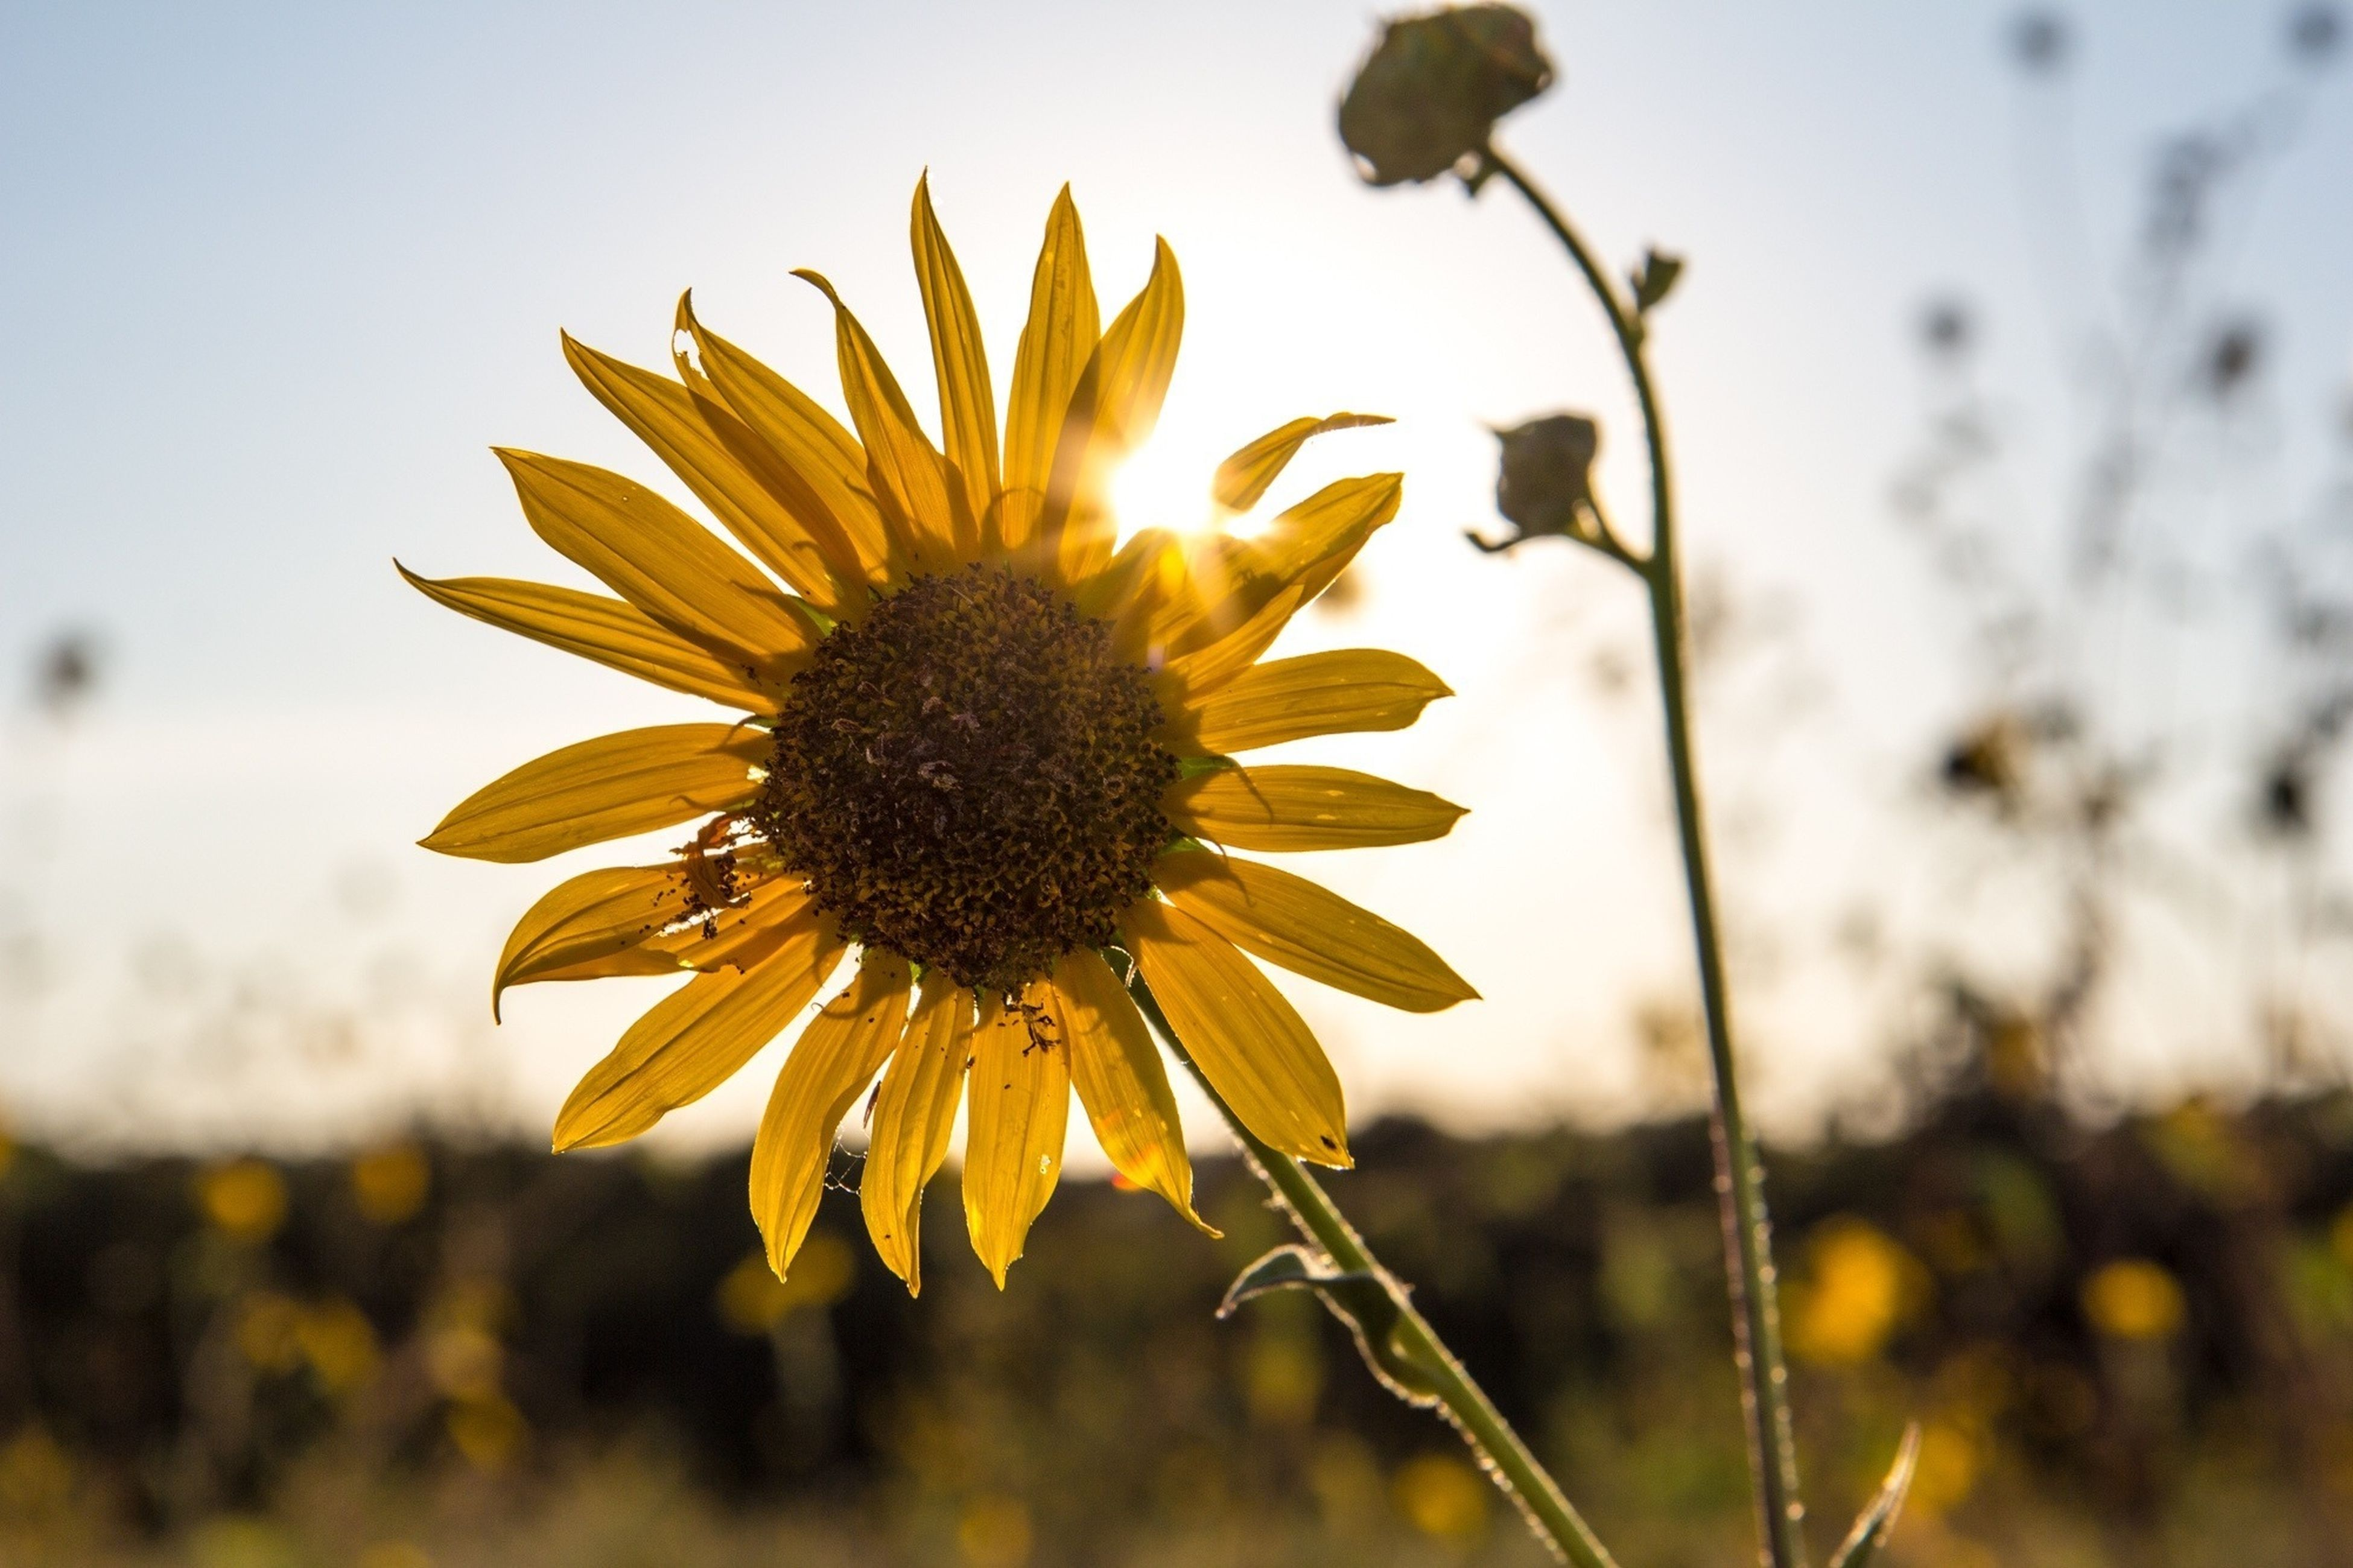 flower, fragility, petal, freshness, flower head, yellow, growth, focus on foreground, close-up, beauty in nature, plant, blooming, pollen, nature, single flower, stem, in bloom, sunflower, sky, field